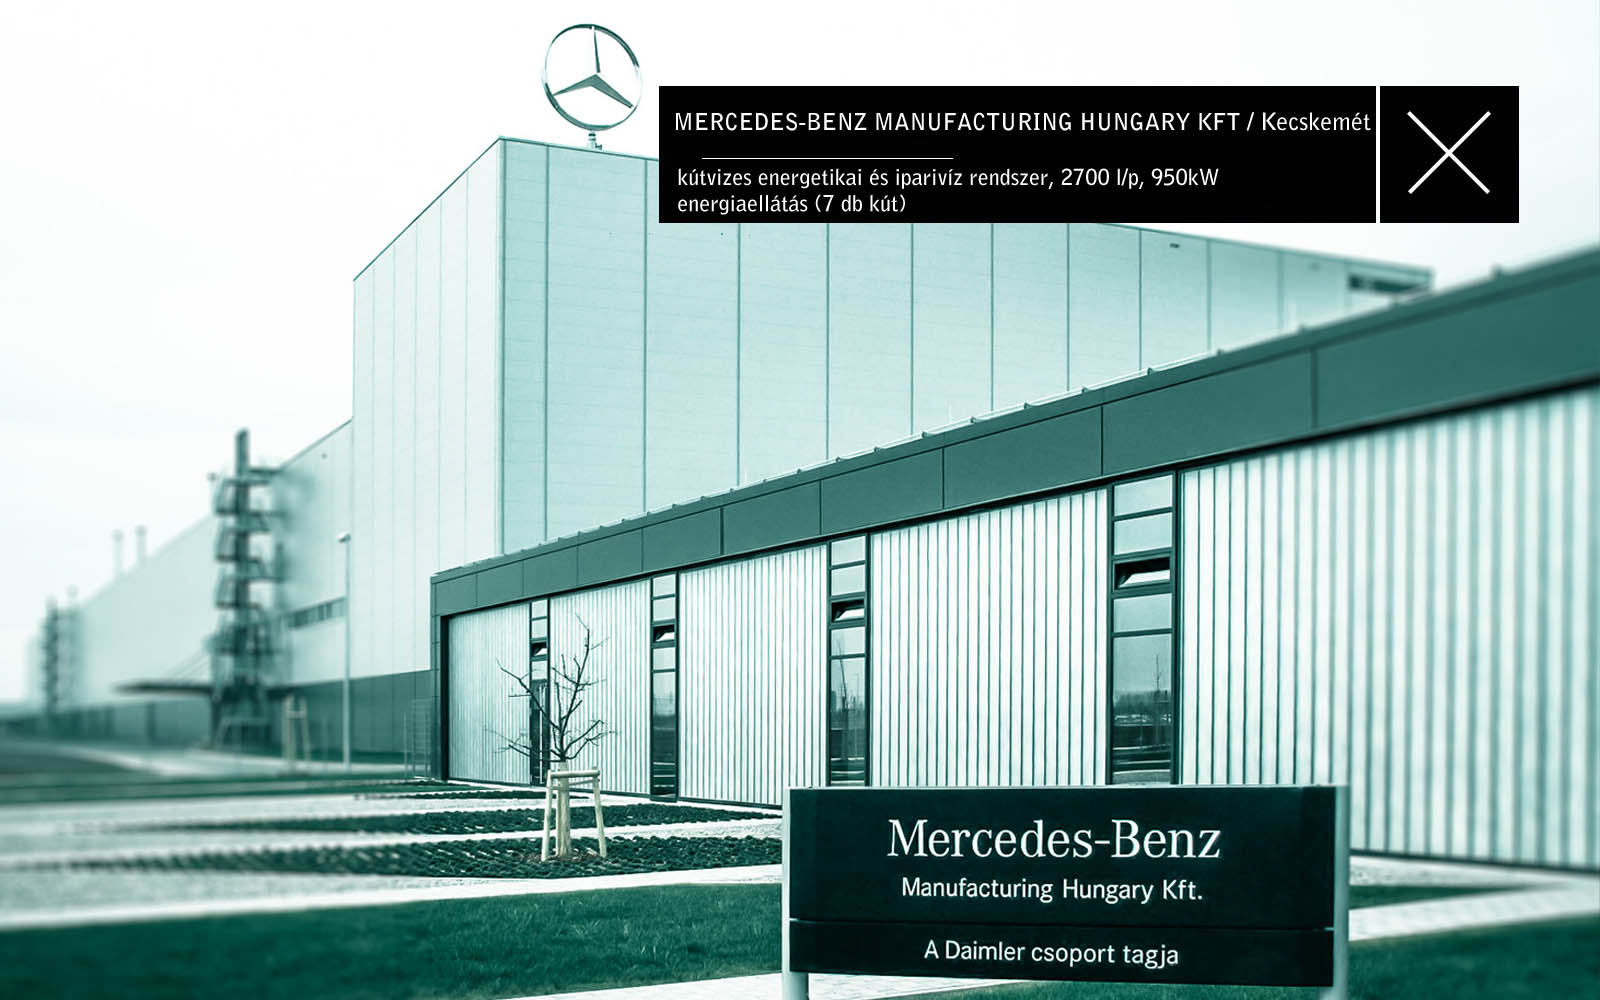 Manufacturing-Benz Manufacturing Hungary Kft.